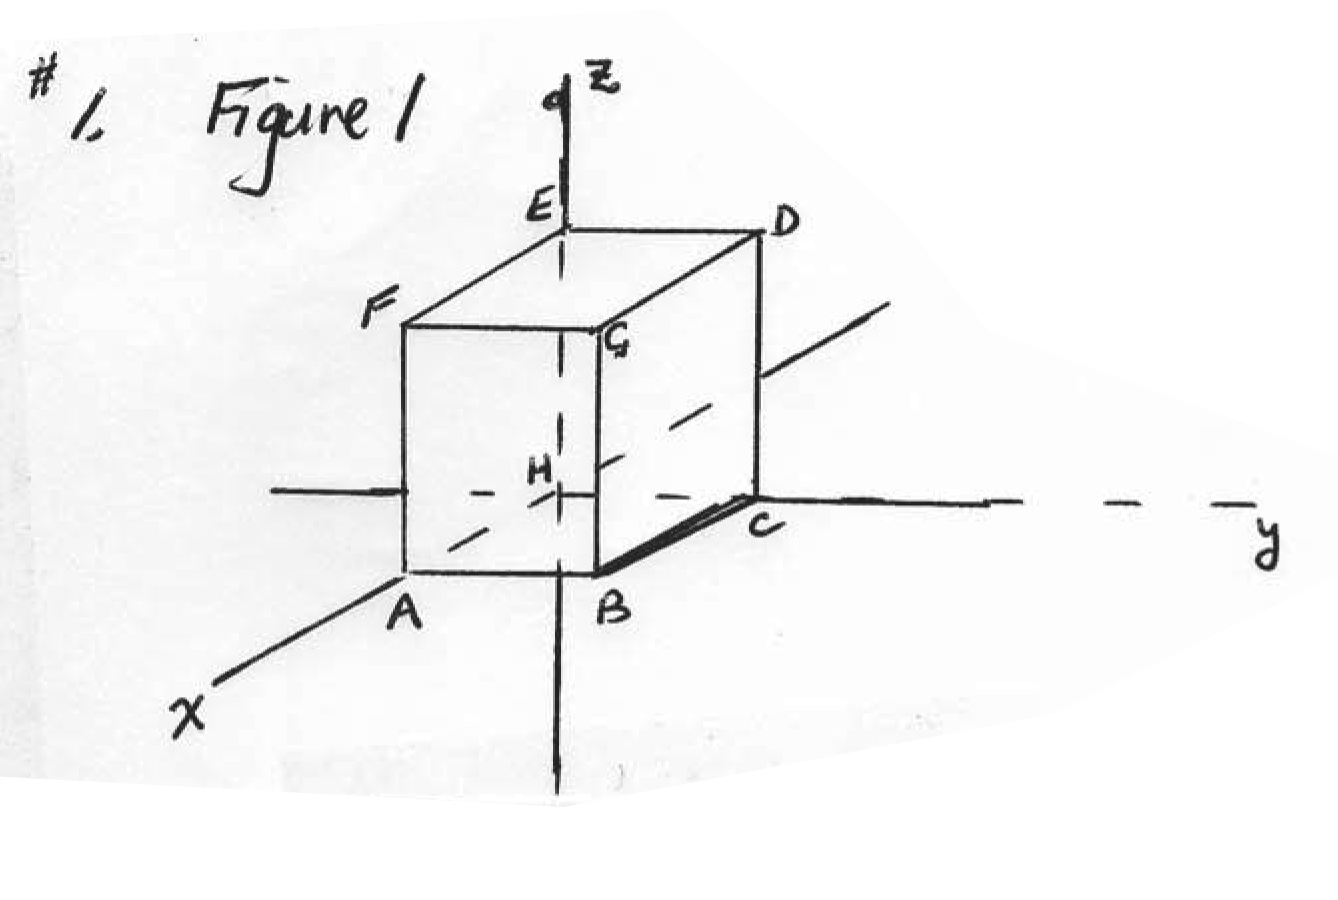 The cube in Figure 1, has edge 16.0 cm and is in a